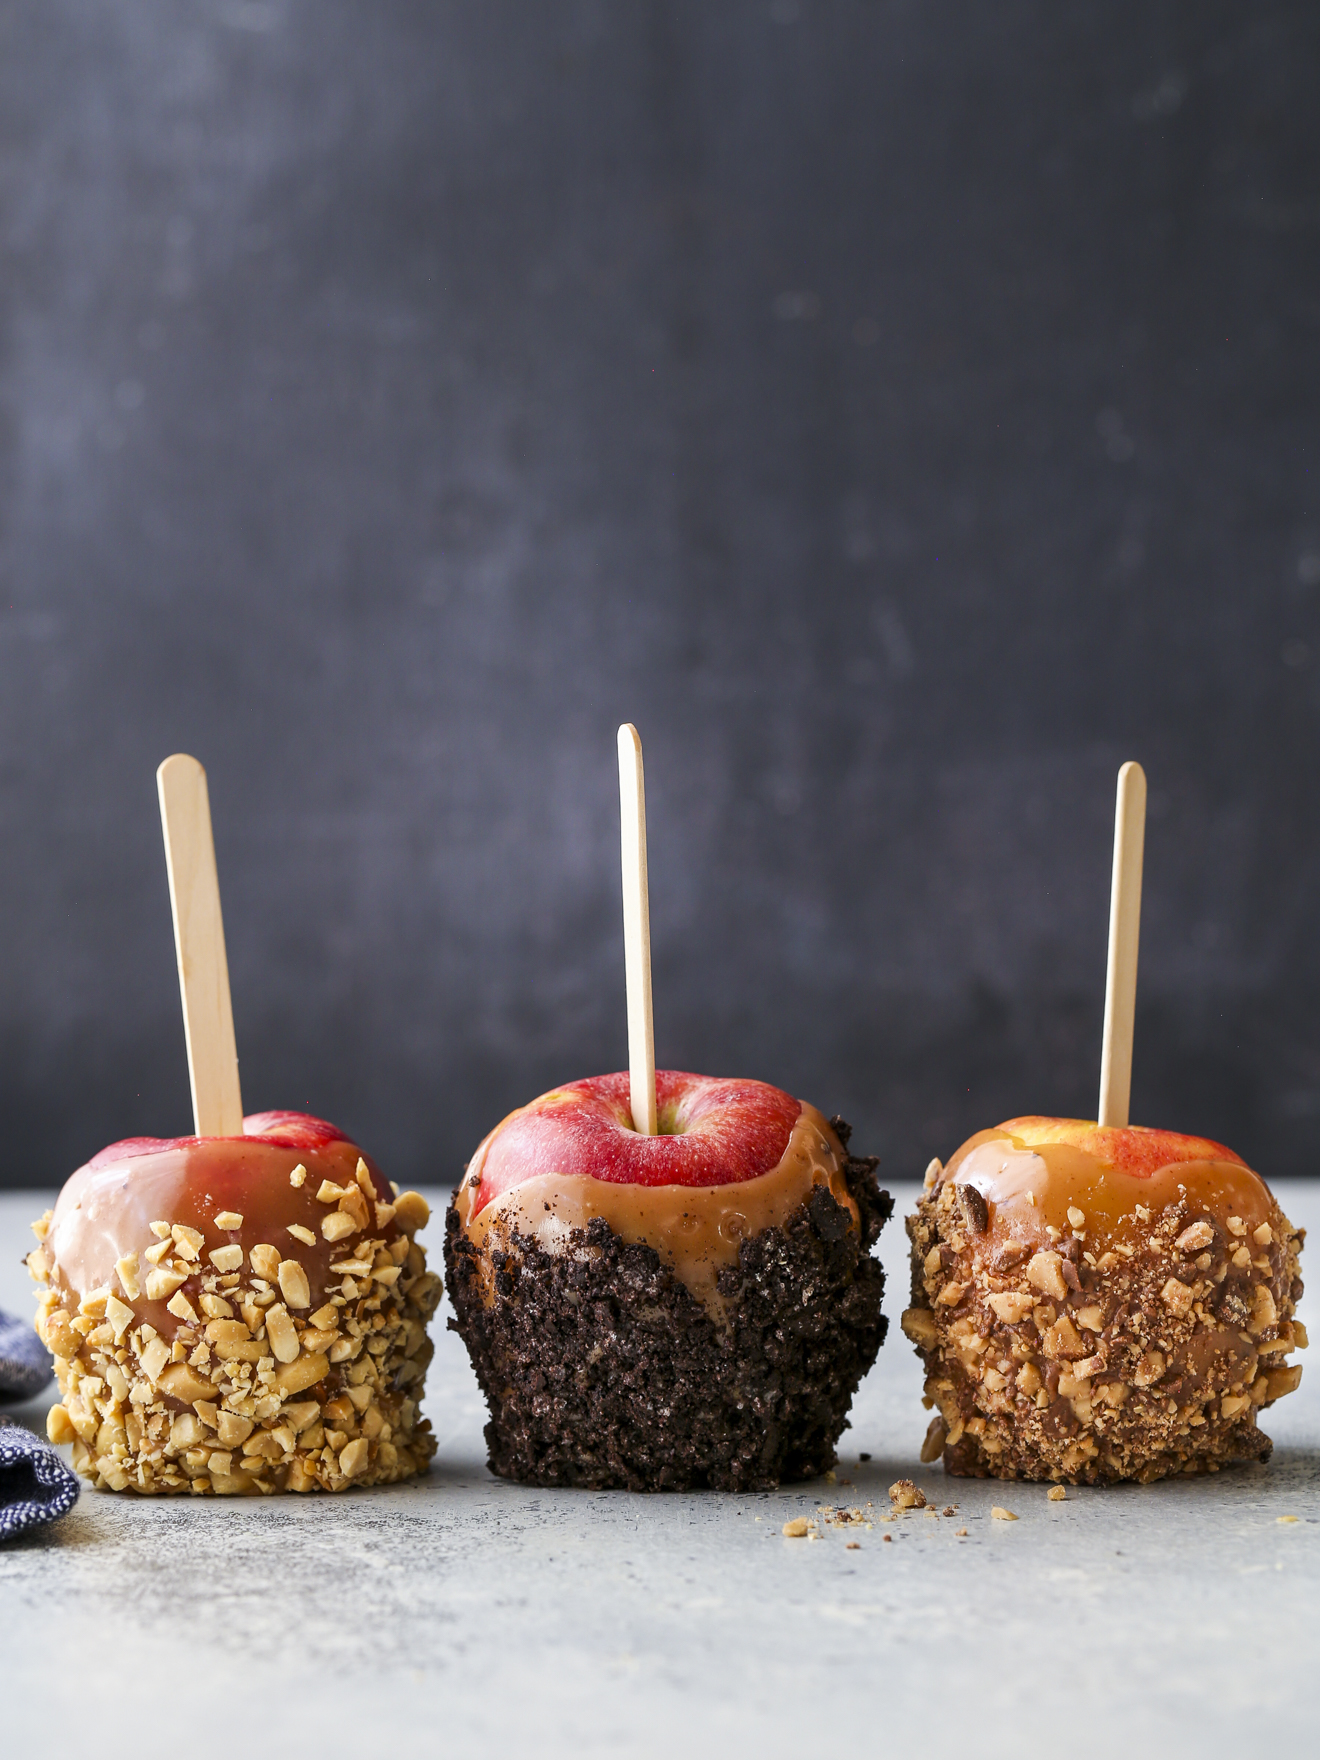 How To Make Homemade Caramel Apples Completely Delicious